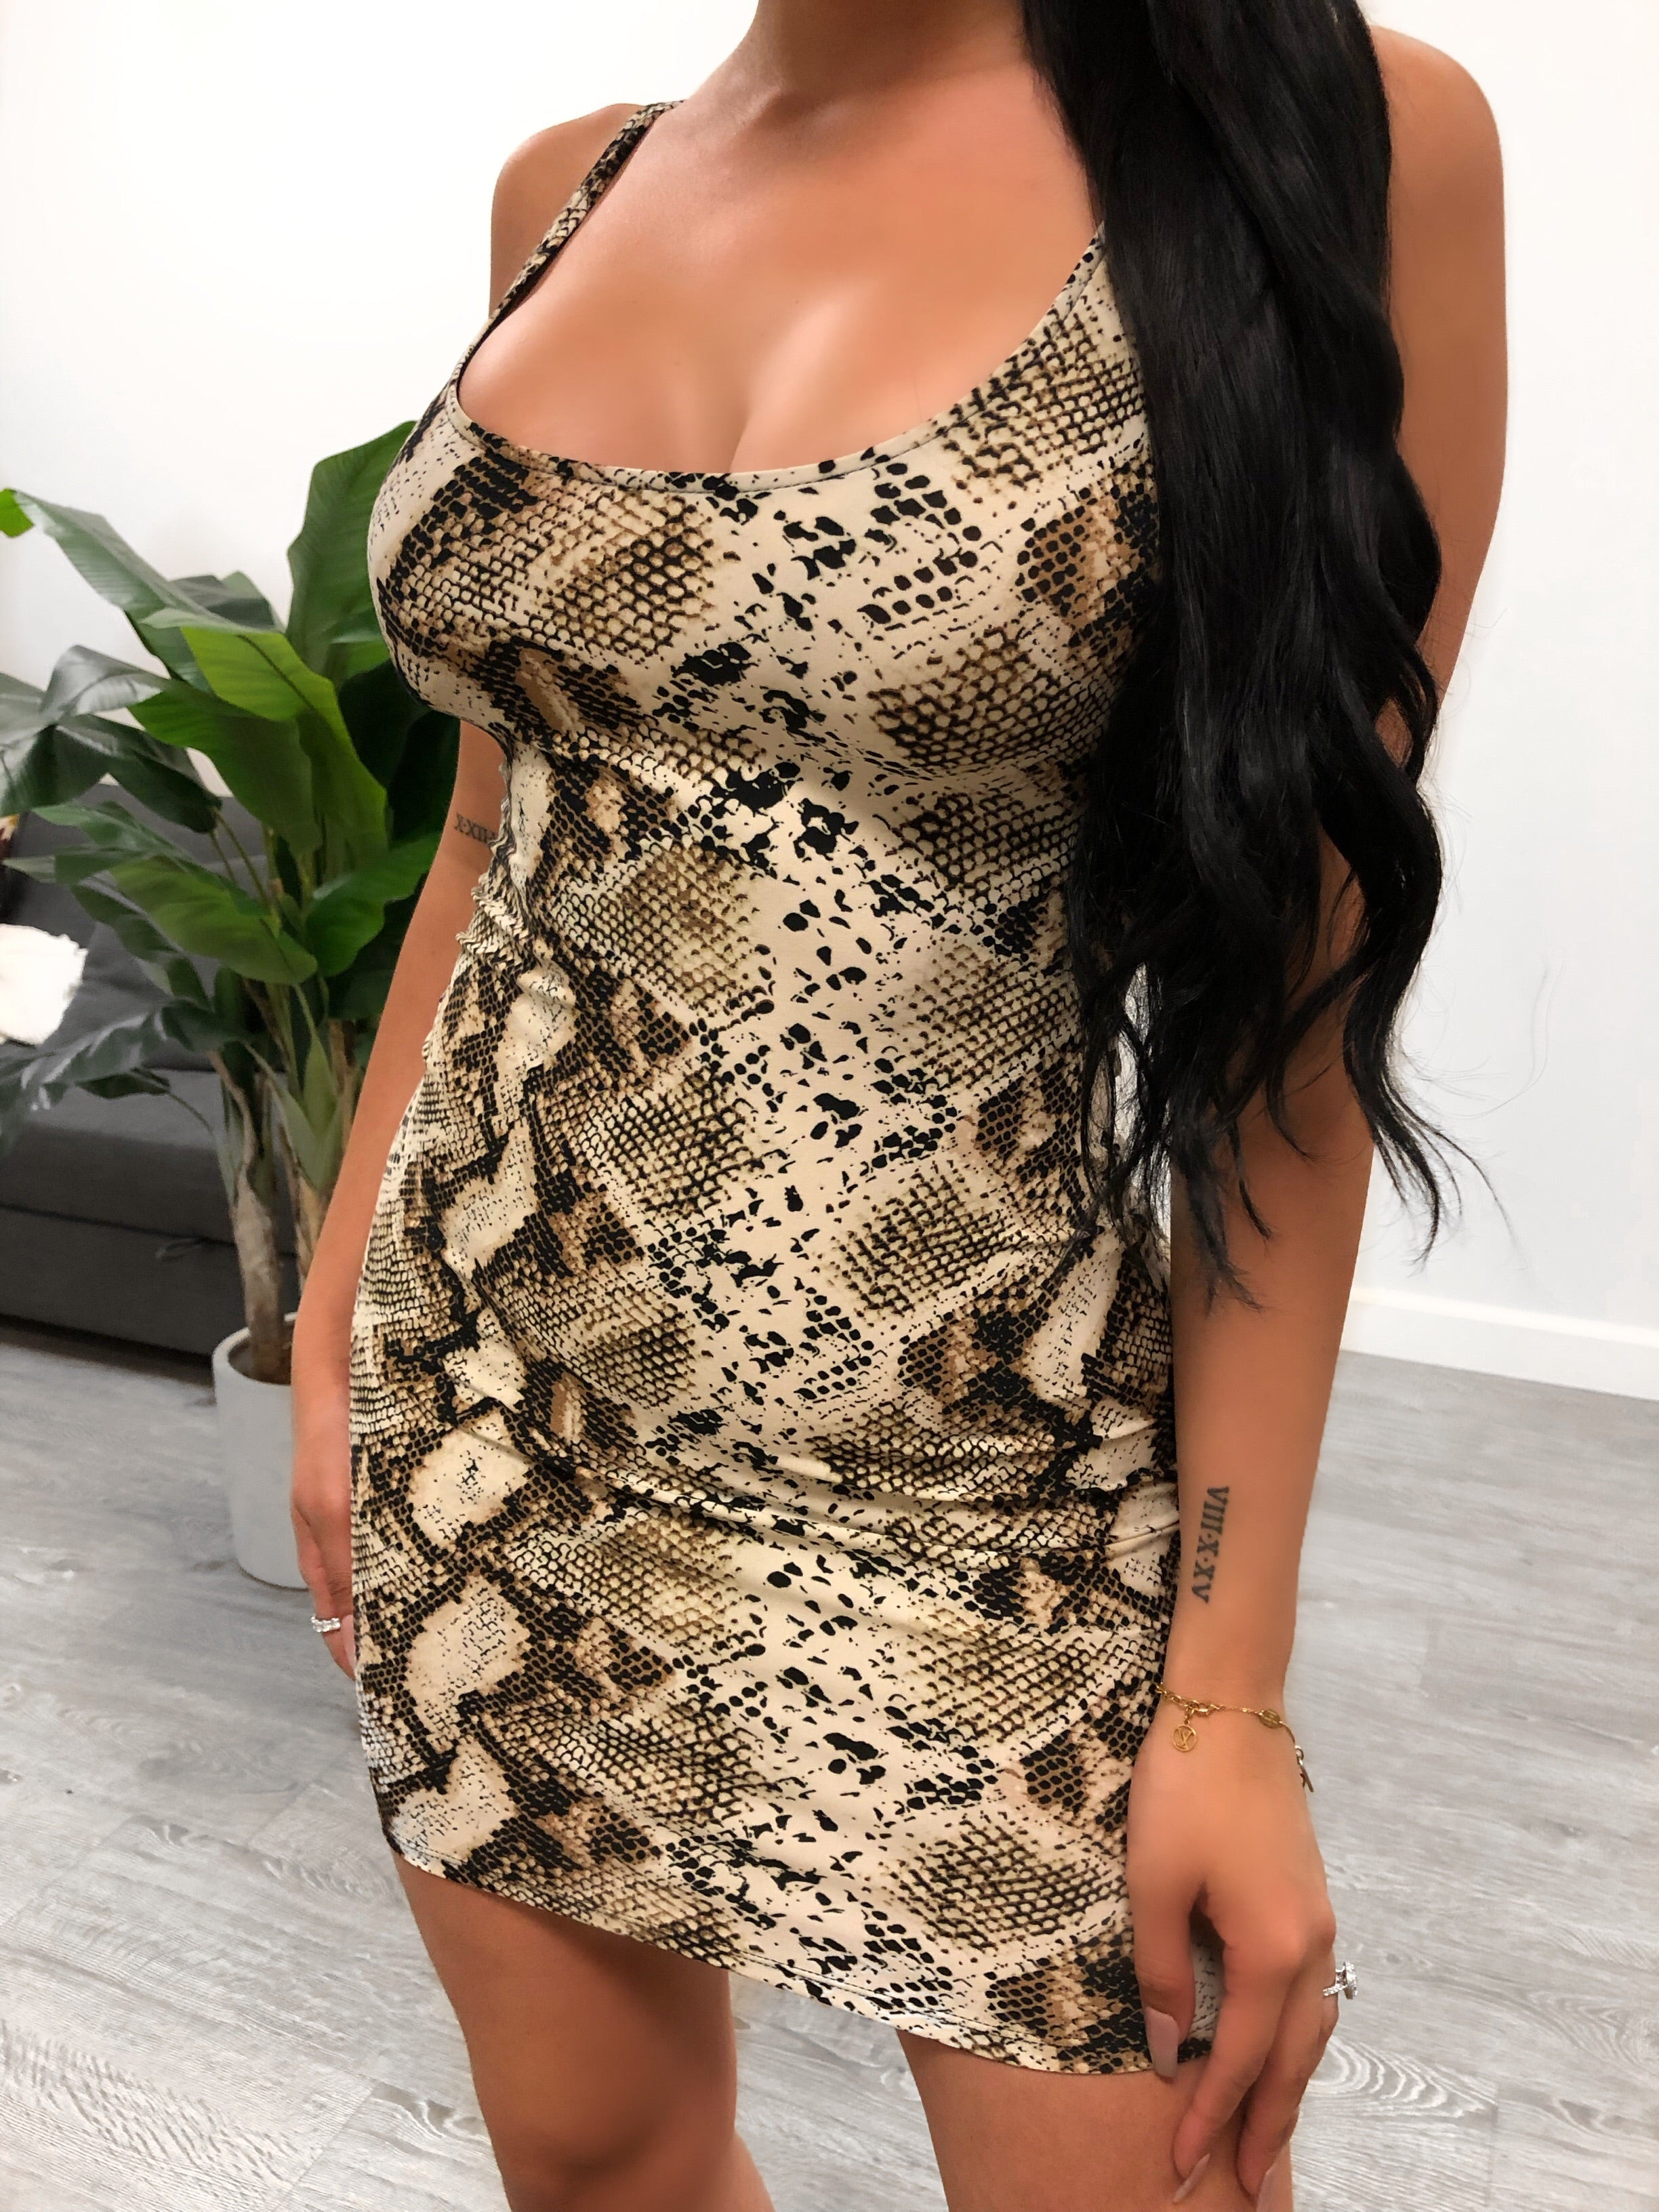 Brown snake print dress. Cami dress with thicker straps. Dress is midi length. Stretchy material.